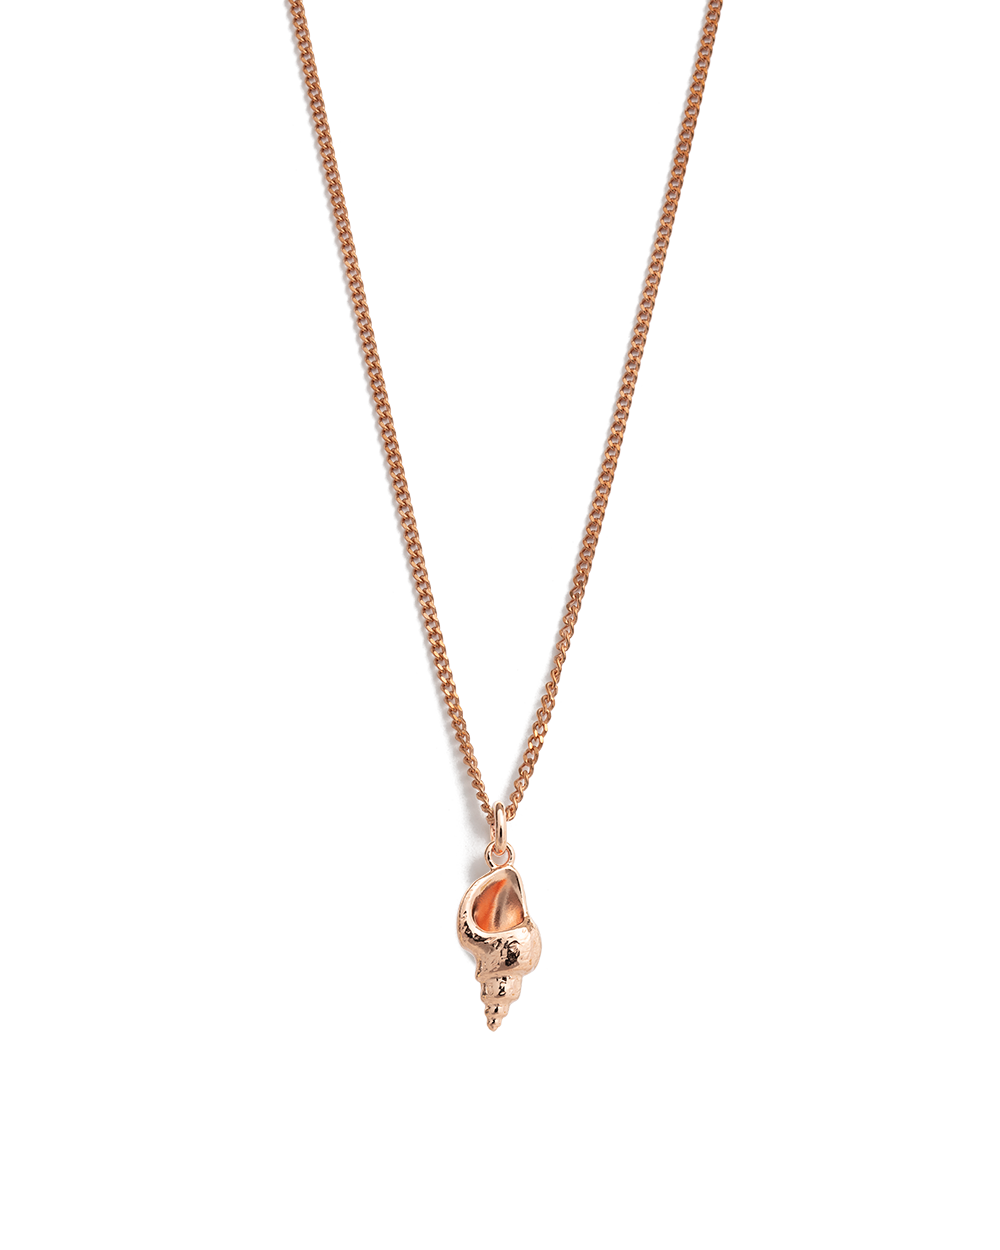 CONCH SHELL NECKLACE (18K-ROSE GOLD-VERMEIL)